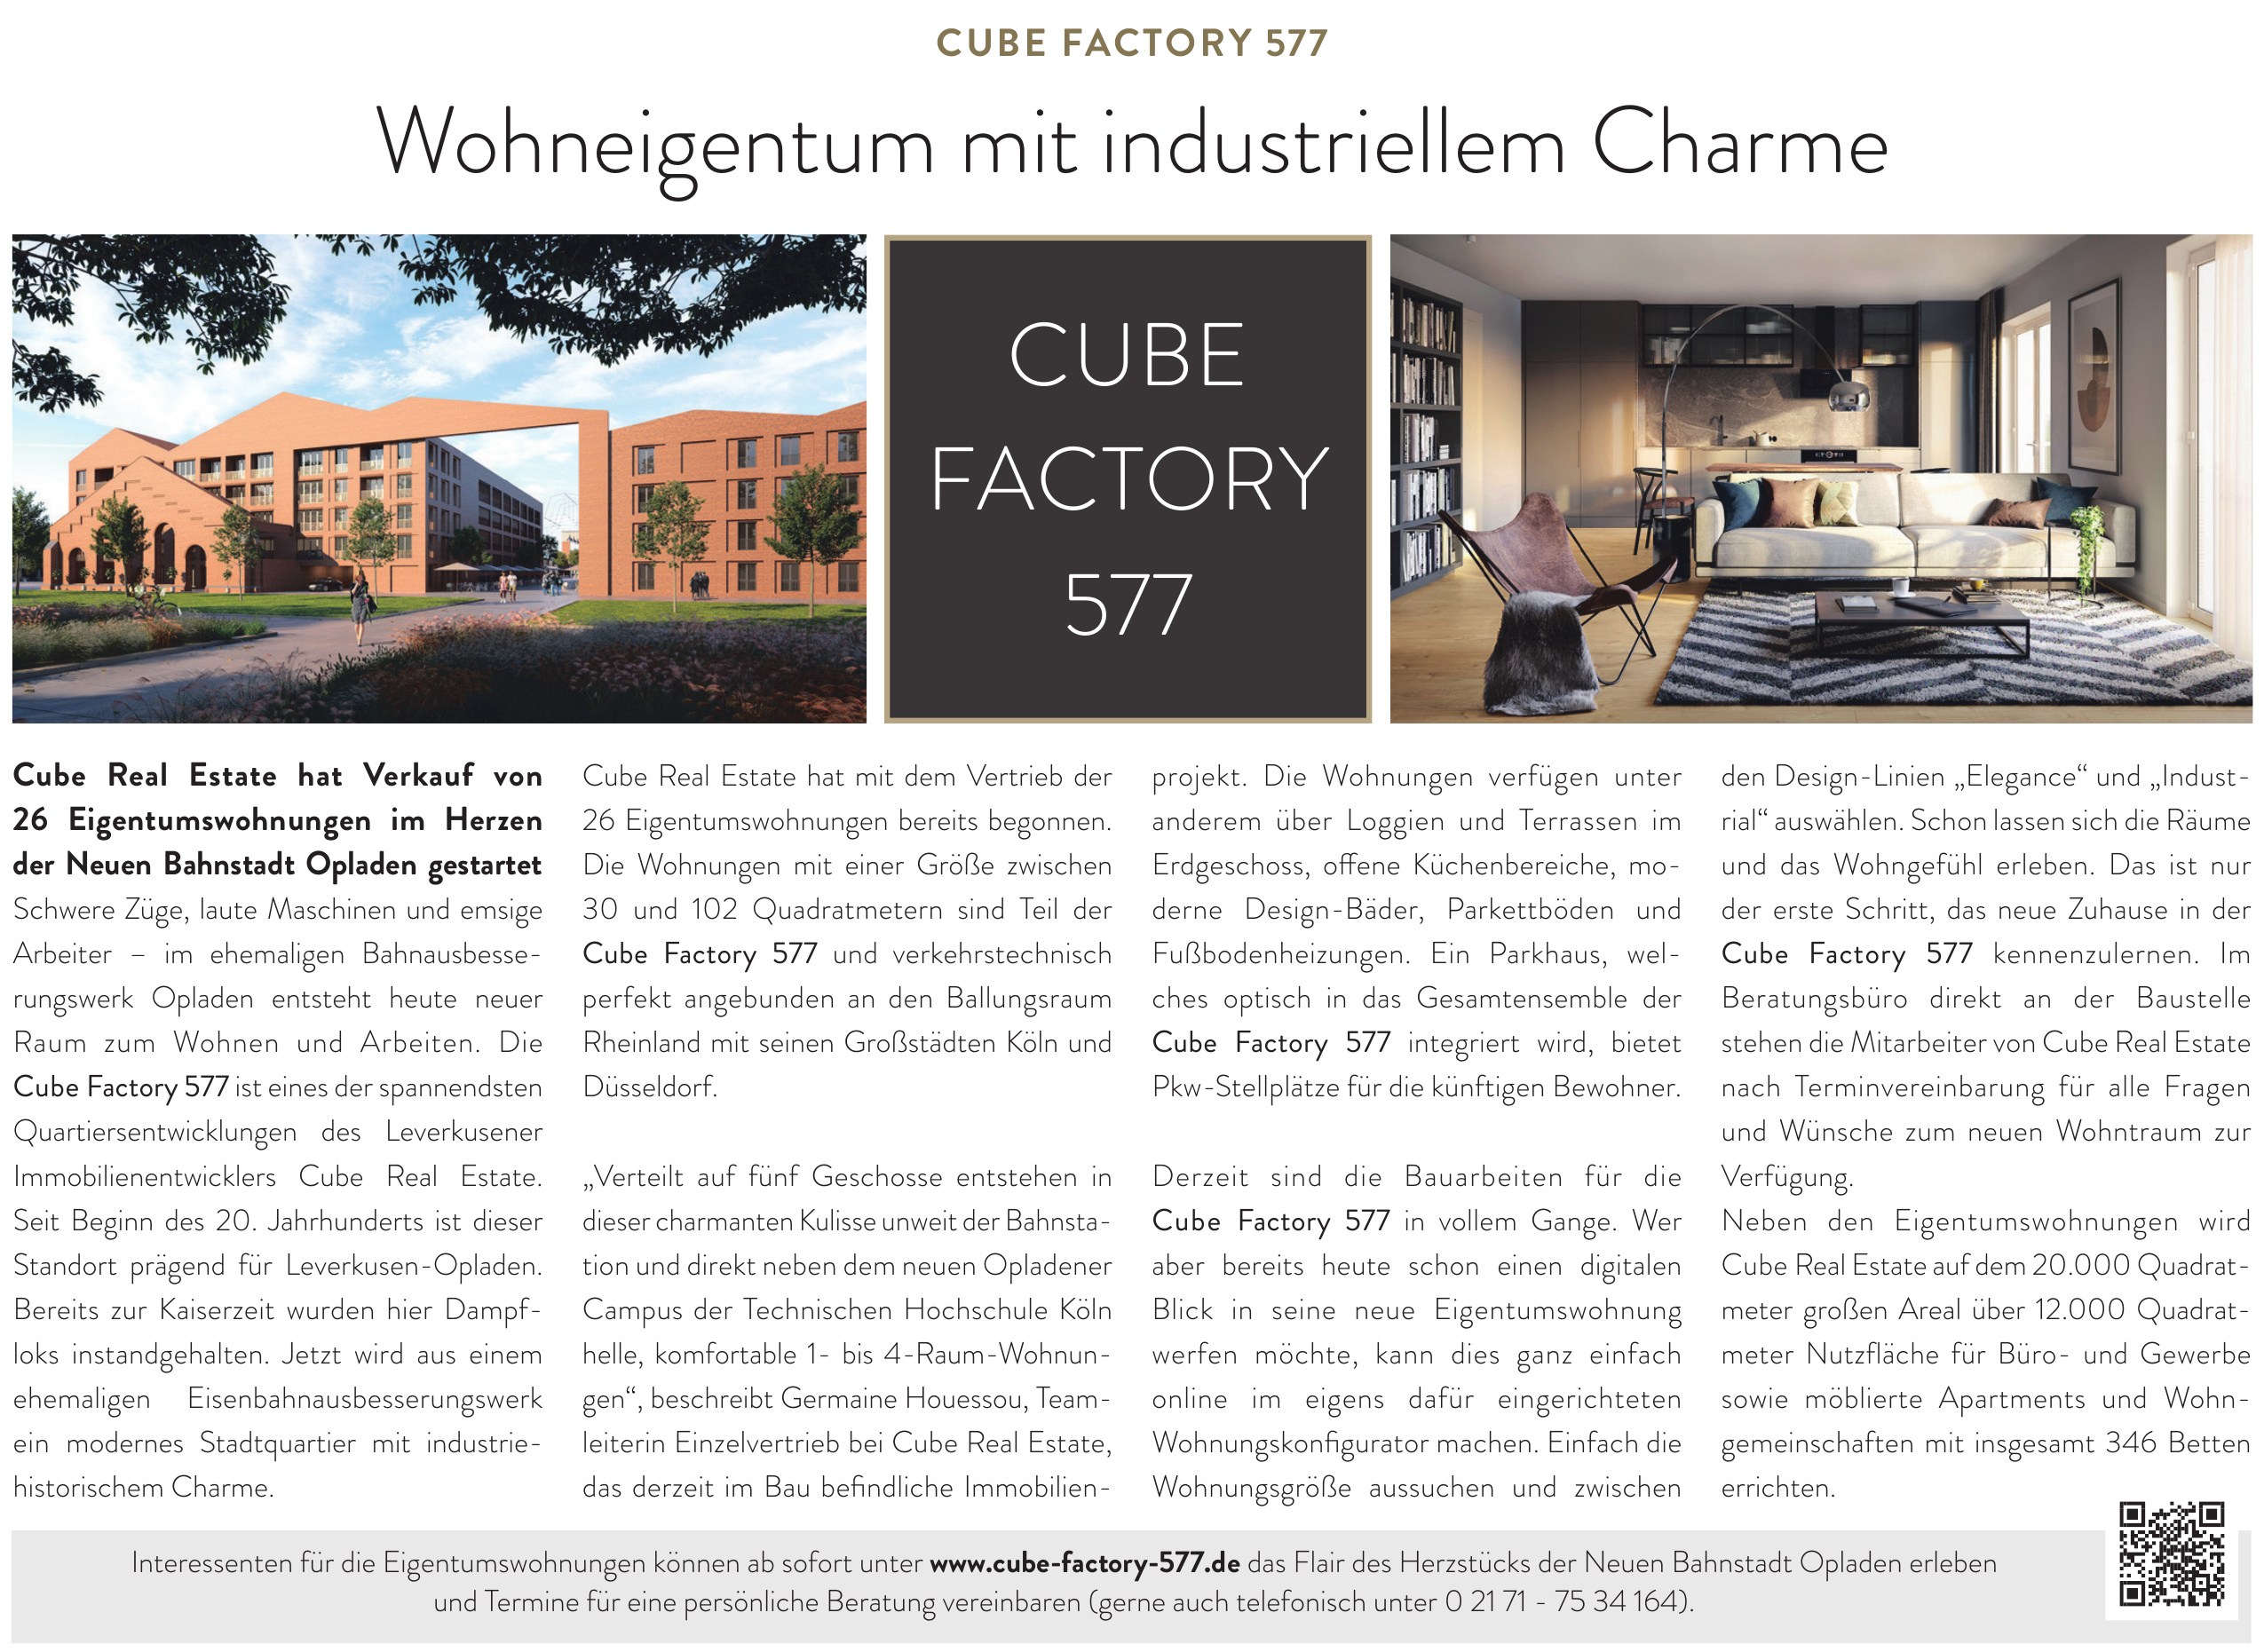 Cube Factory 577